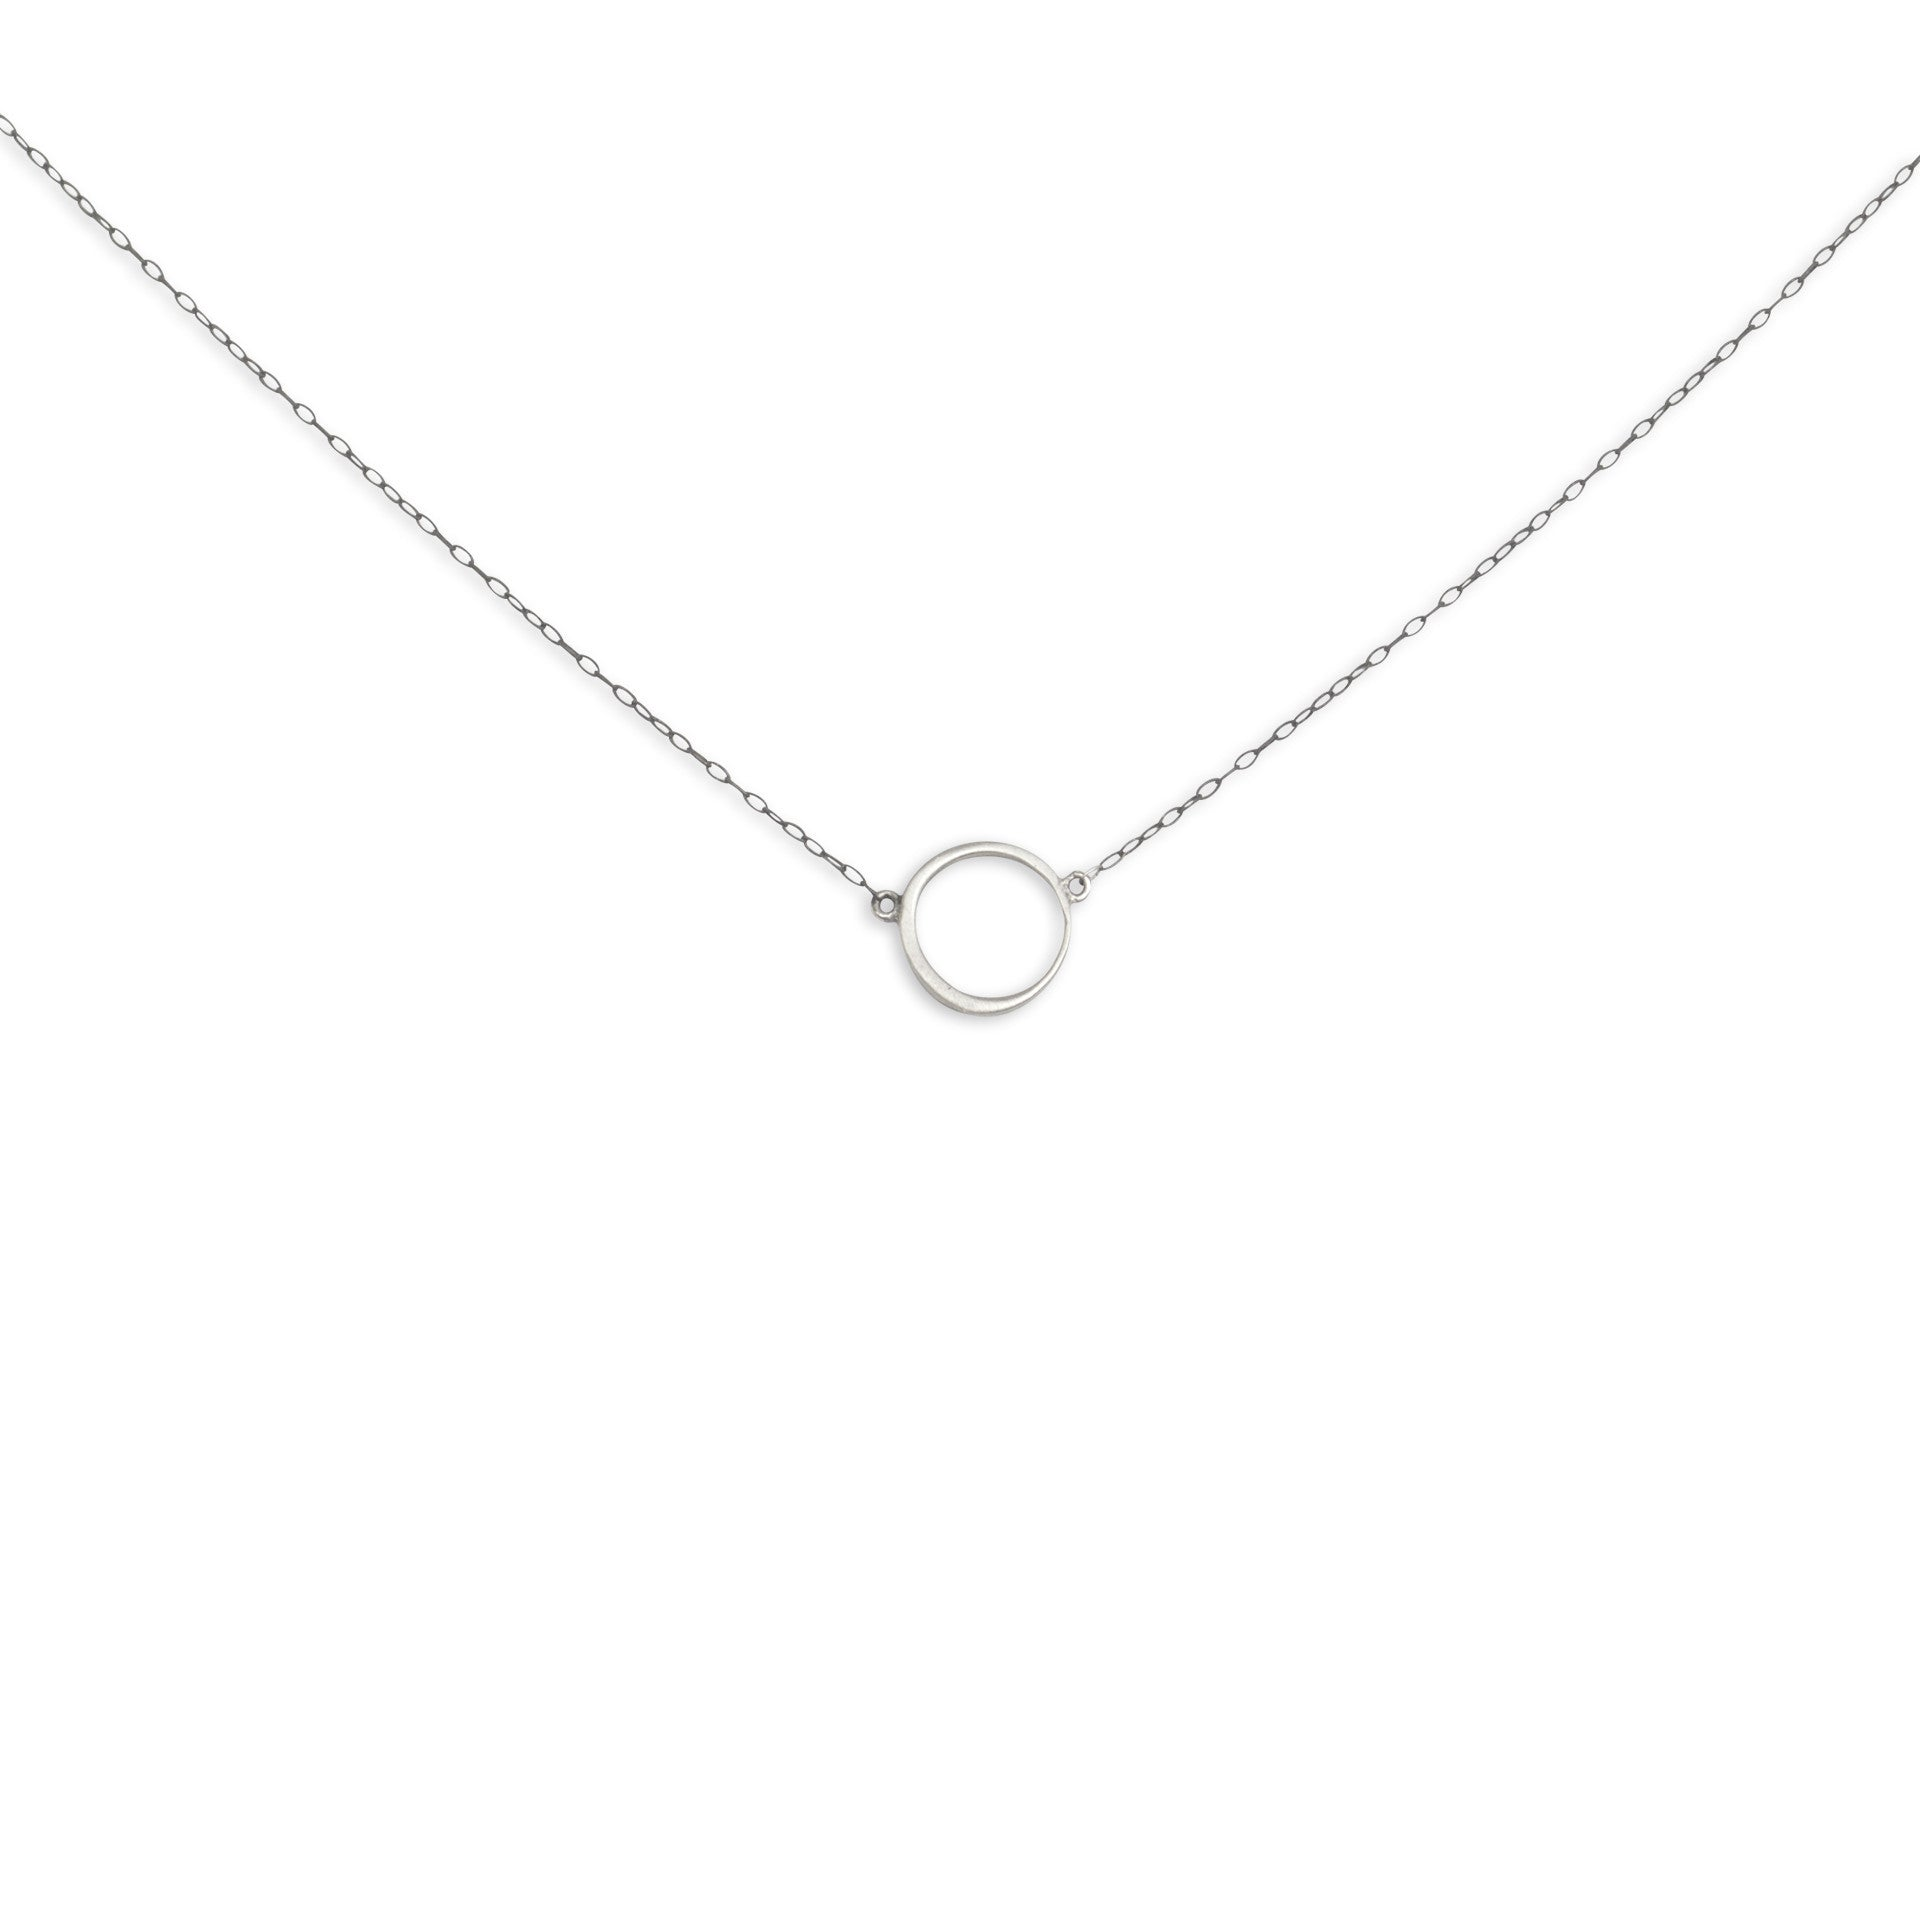 sterling silver/oxidized silver chain offset circle necklace